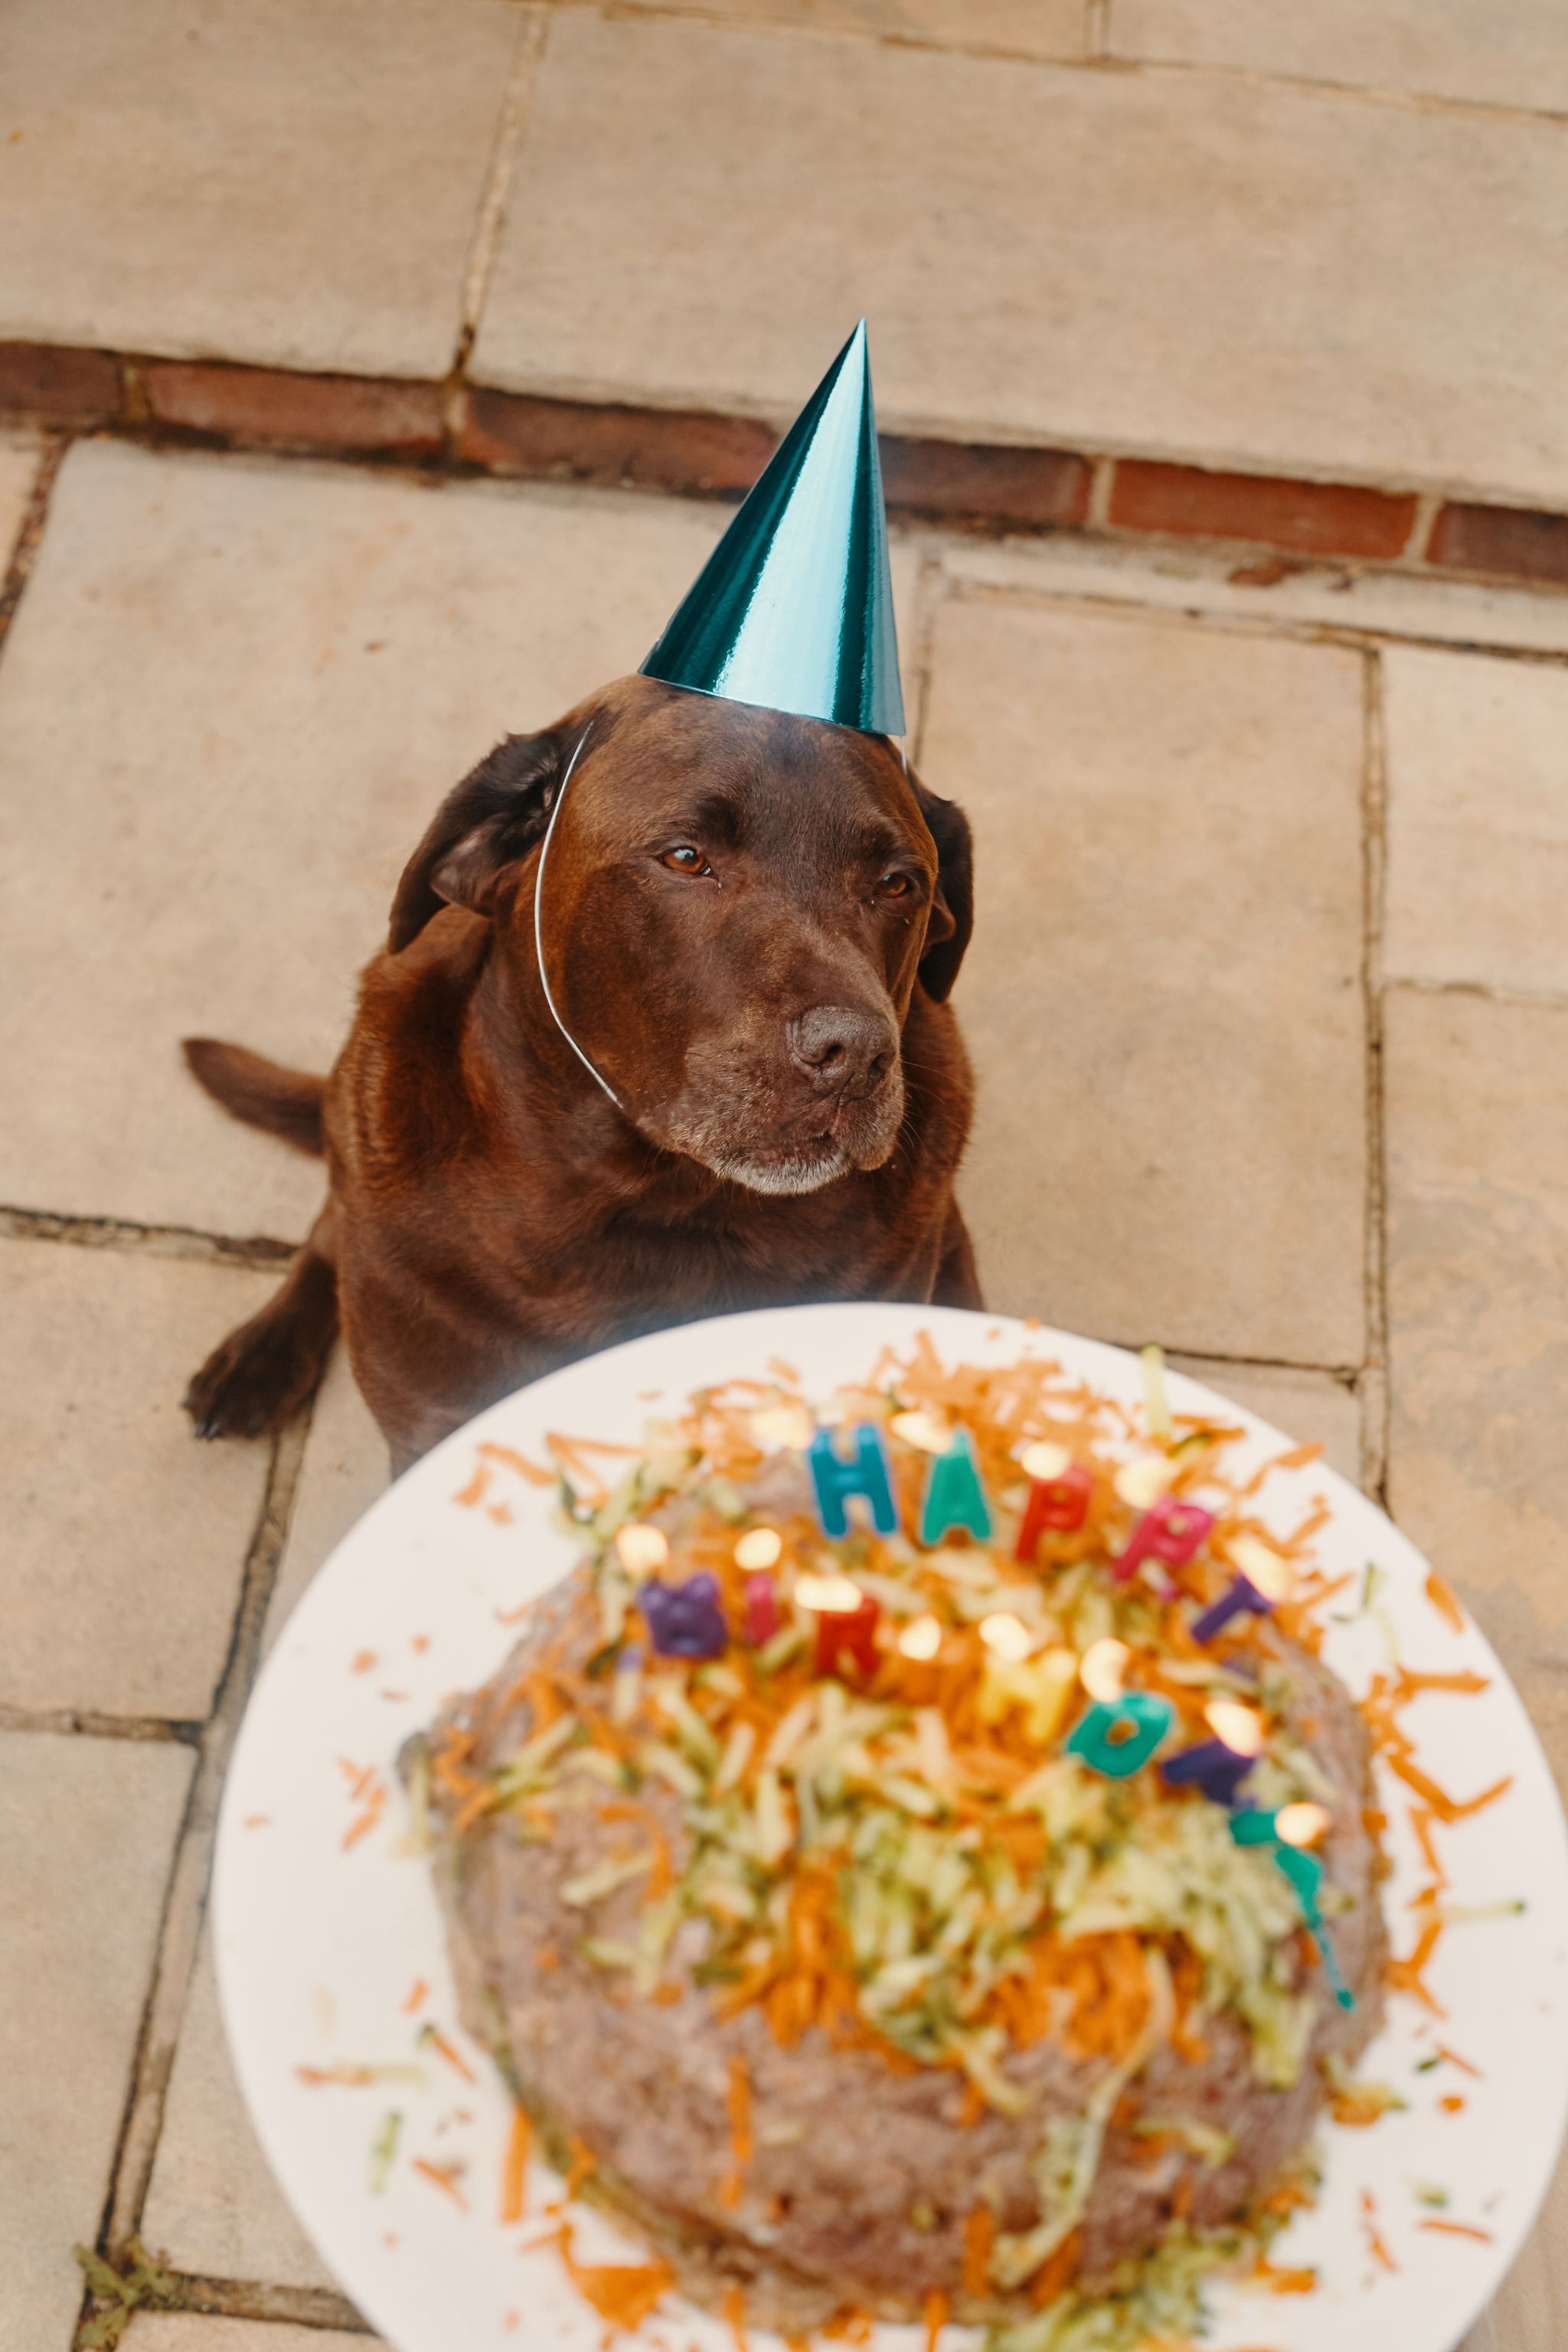 How To Make Your Dog A Birthday Cake